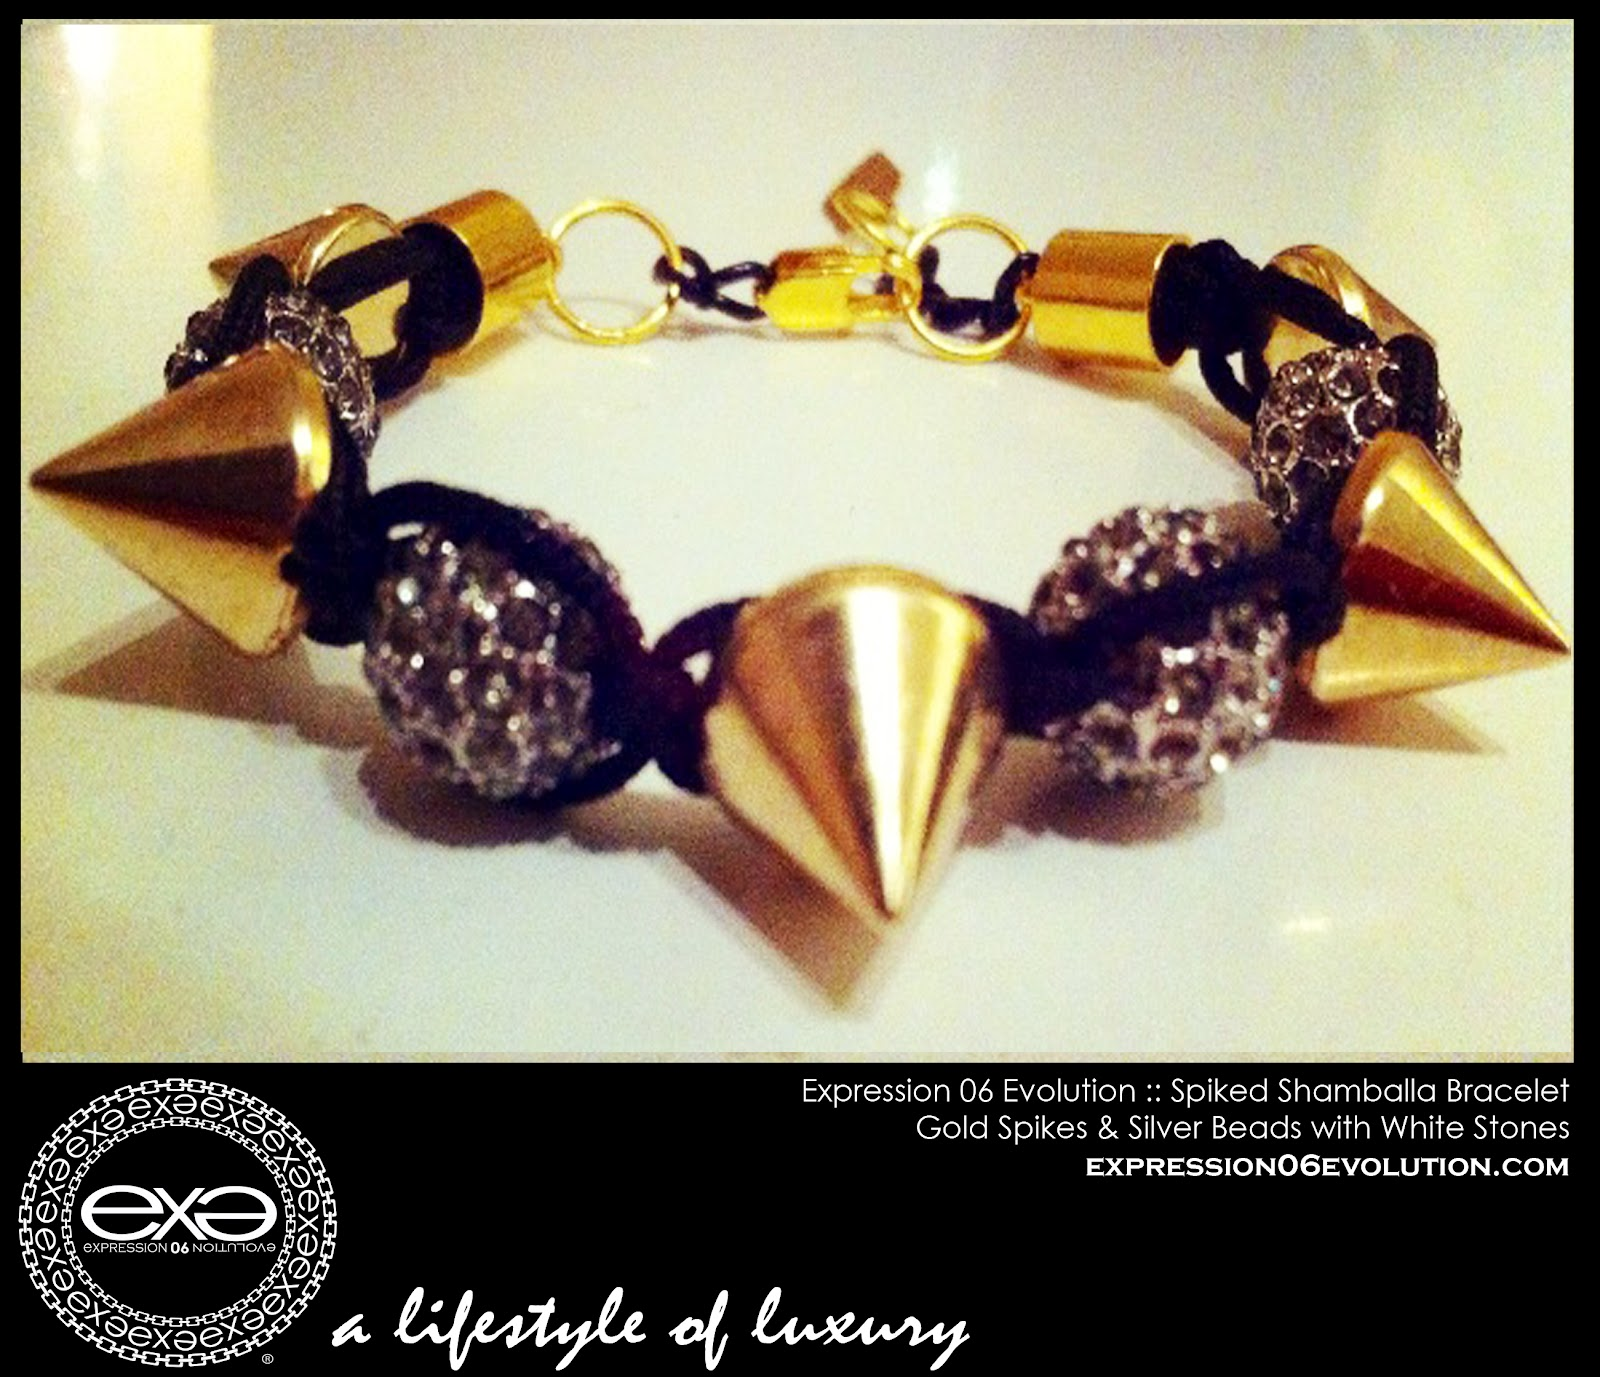 http://3.bp.blogspot.com/-q-3pYg5ytBg/UCY4Fqi__PI/AAAAAAAAB2k/IV-1ftVBsTQ/s1600/EXPRESSION+06+EVOLUTION+-+SPIKED+SHAMBALLA+BRACLET+-+GOLD+SPIKES+WITH+WHITE+STONES+-+EXPRESSIVE+CLOTHING+LLC+-+DUSHON+EX+DANIELS+-+ALEXIS+BELSKI+.jpg